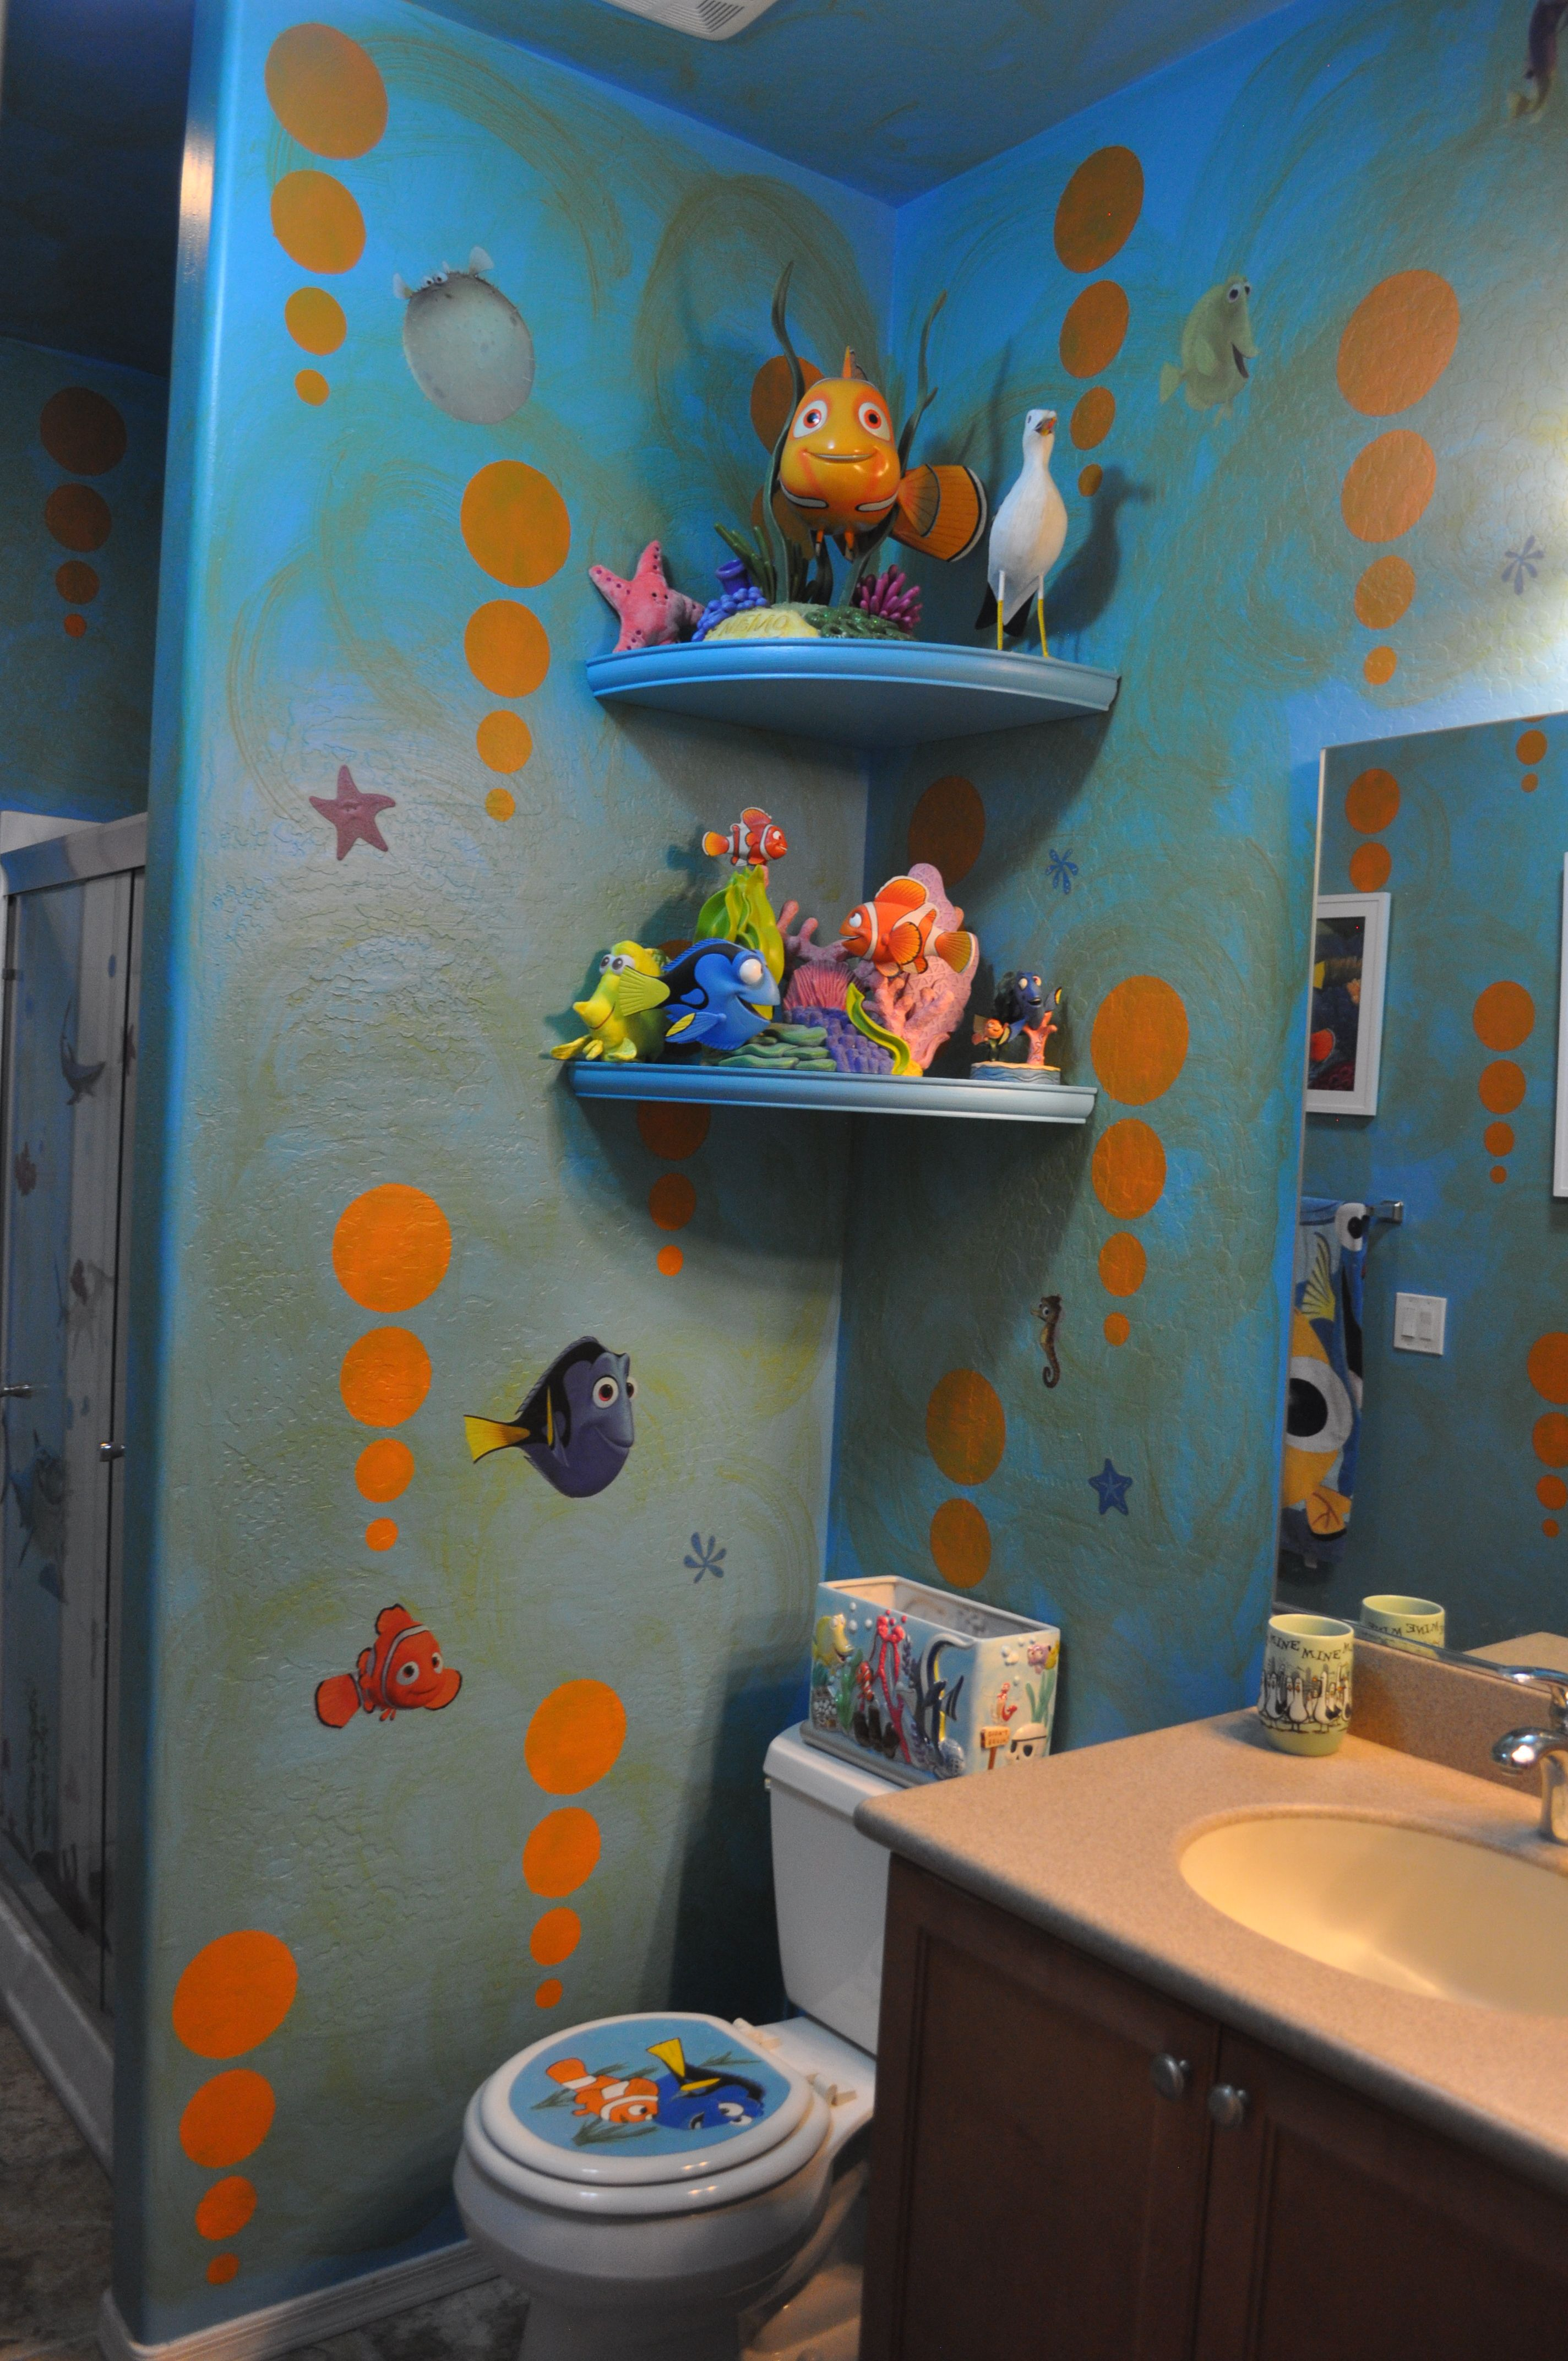 Nemo Bathroom Set Disney Finding Nemo Bathroom Decorating Dory Mydisneylove